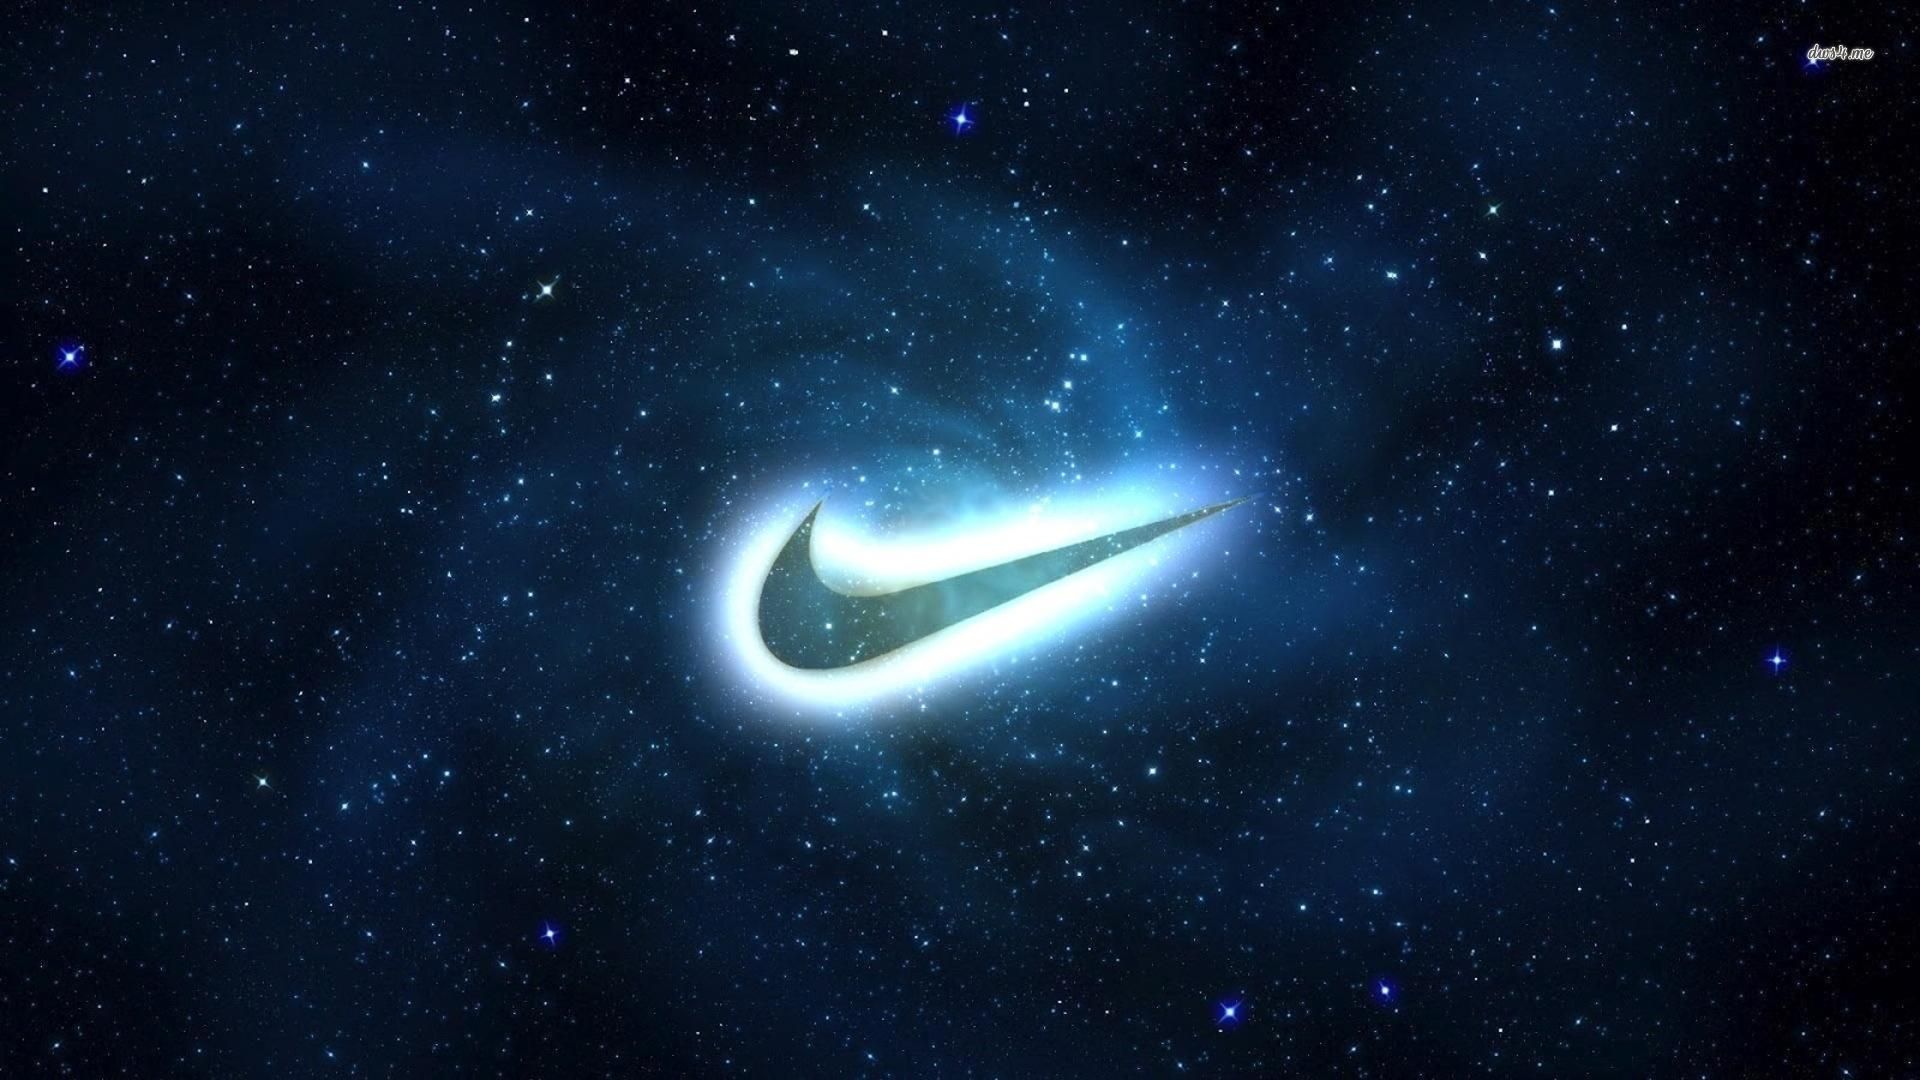 nike logo neon greenviewing gallery for nike logo neon green wallpaper 1920x1080